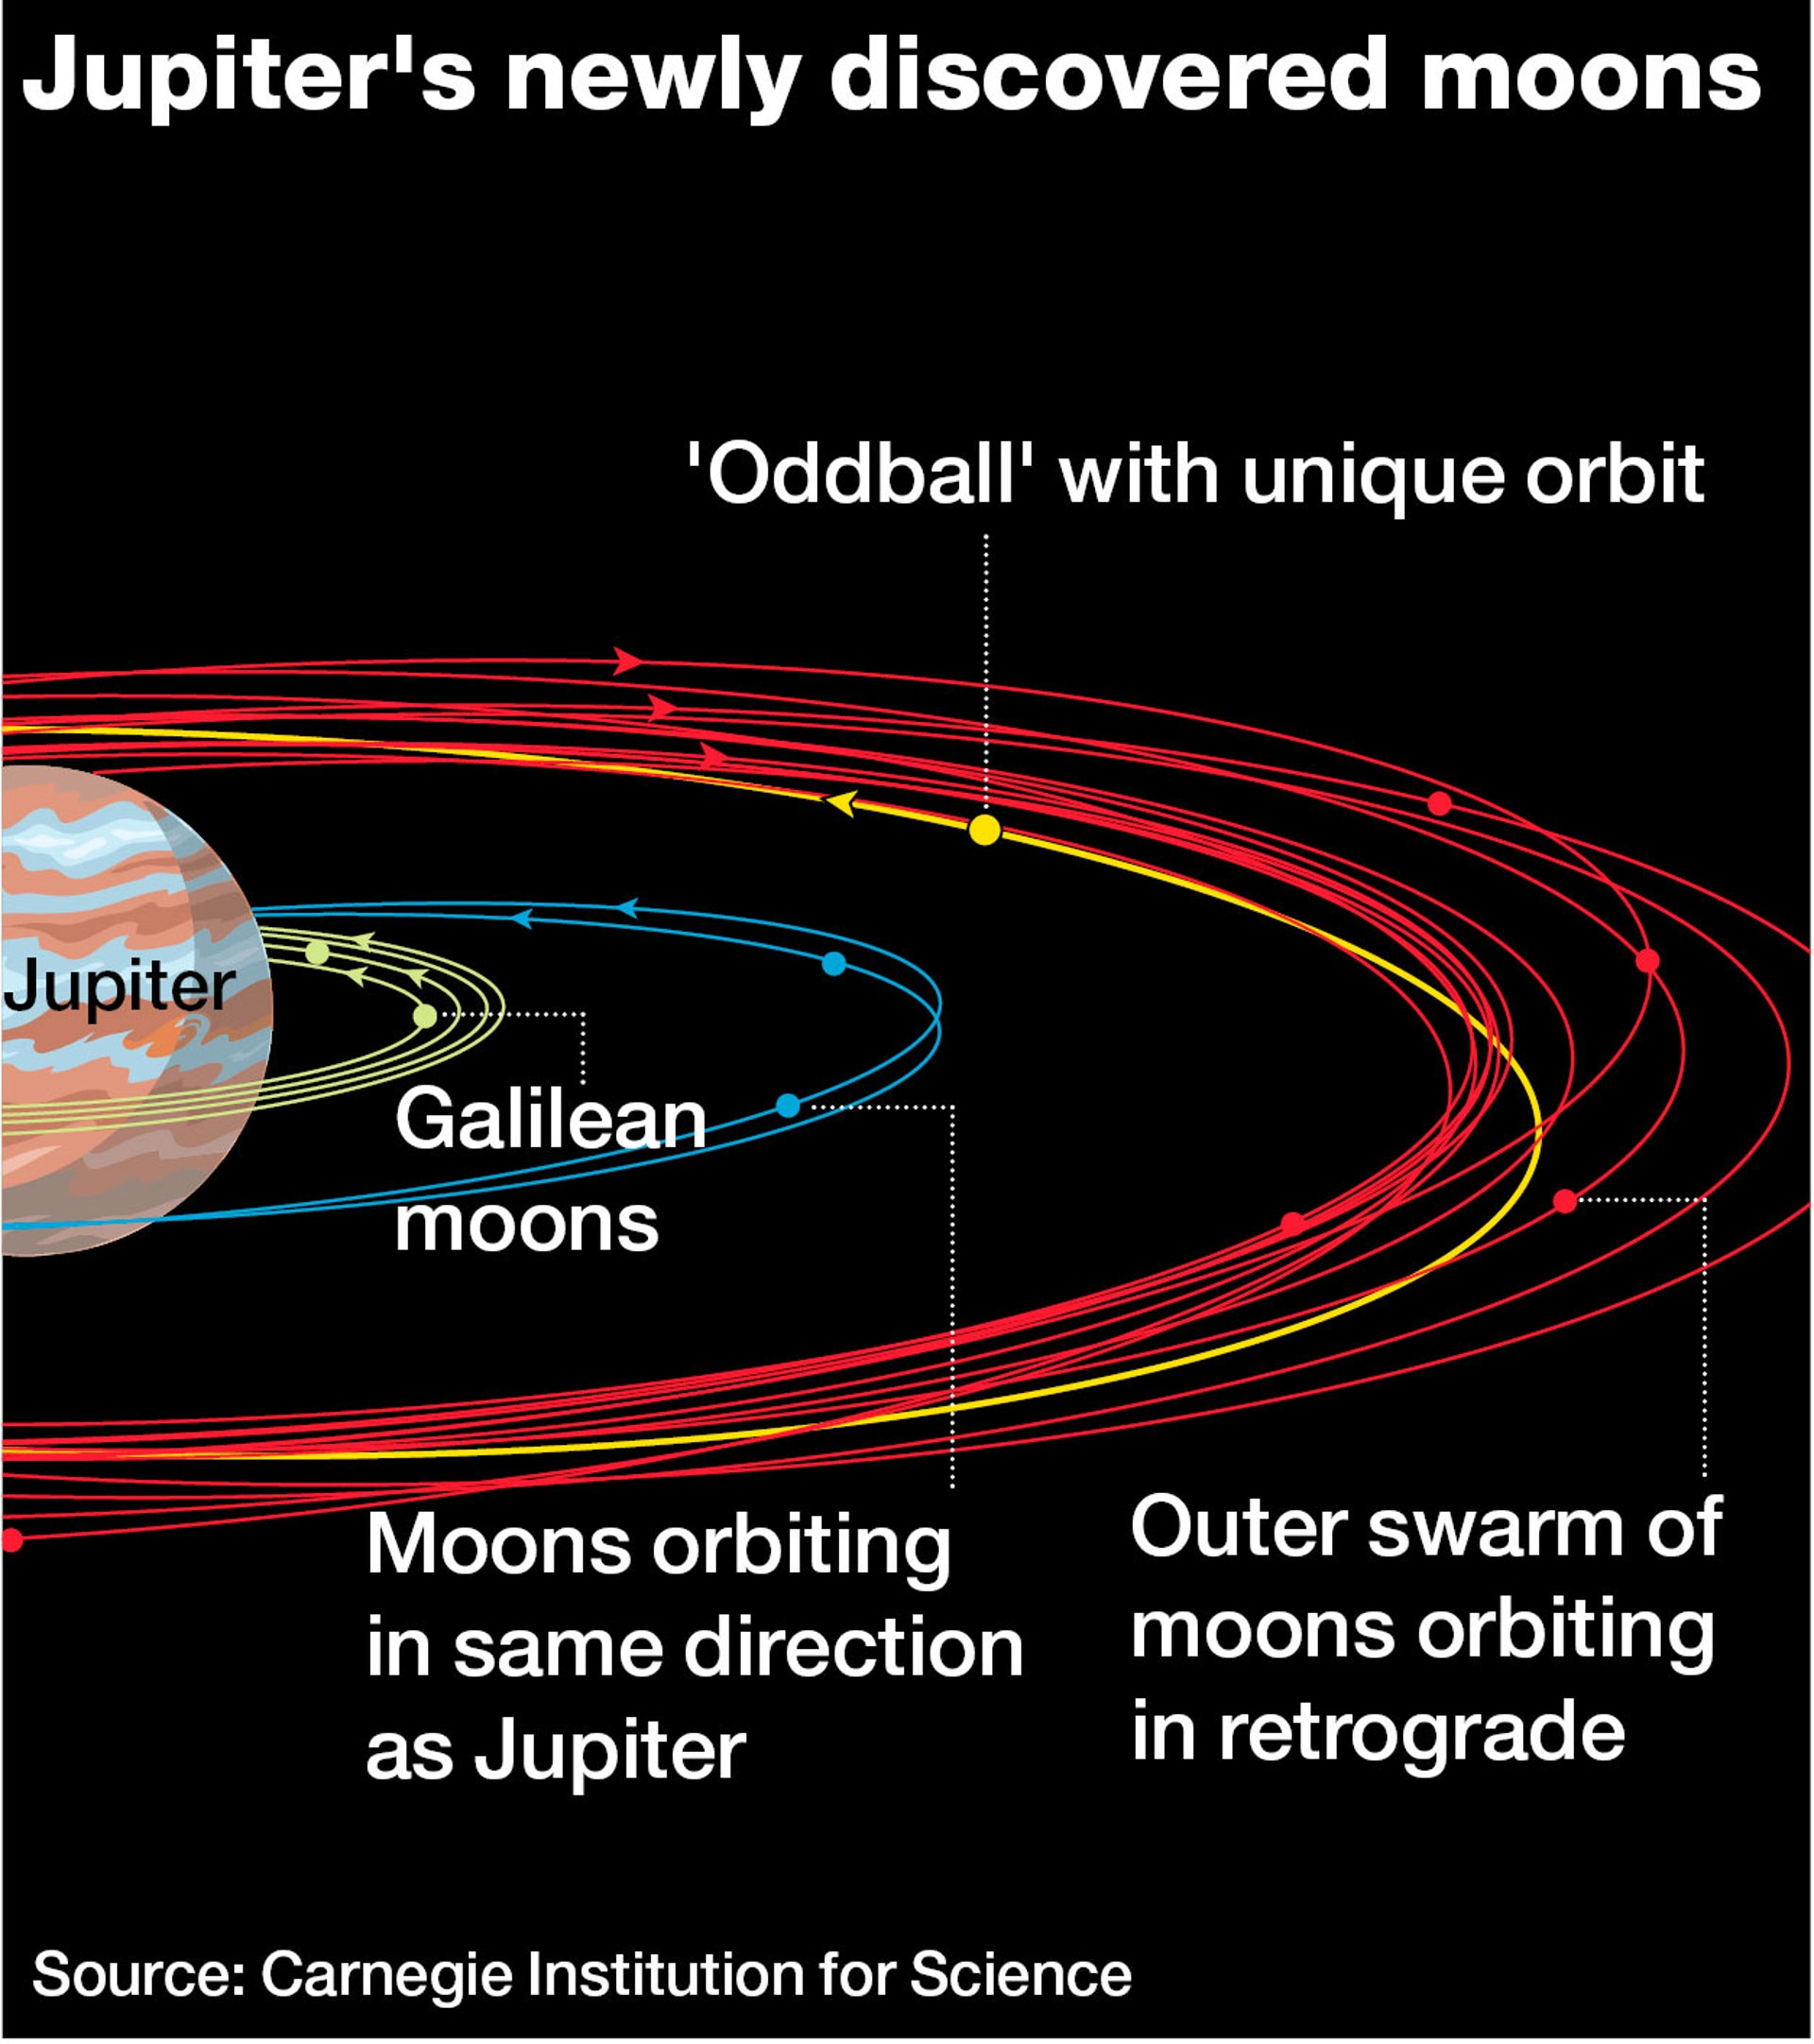 Jupiter's newly discovered moons